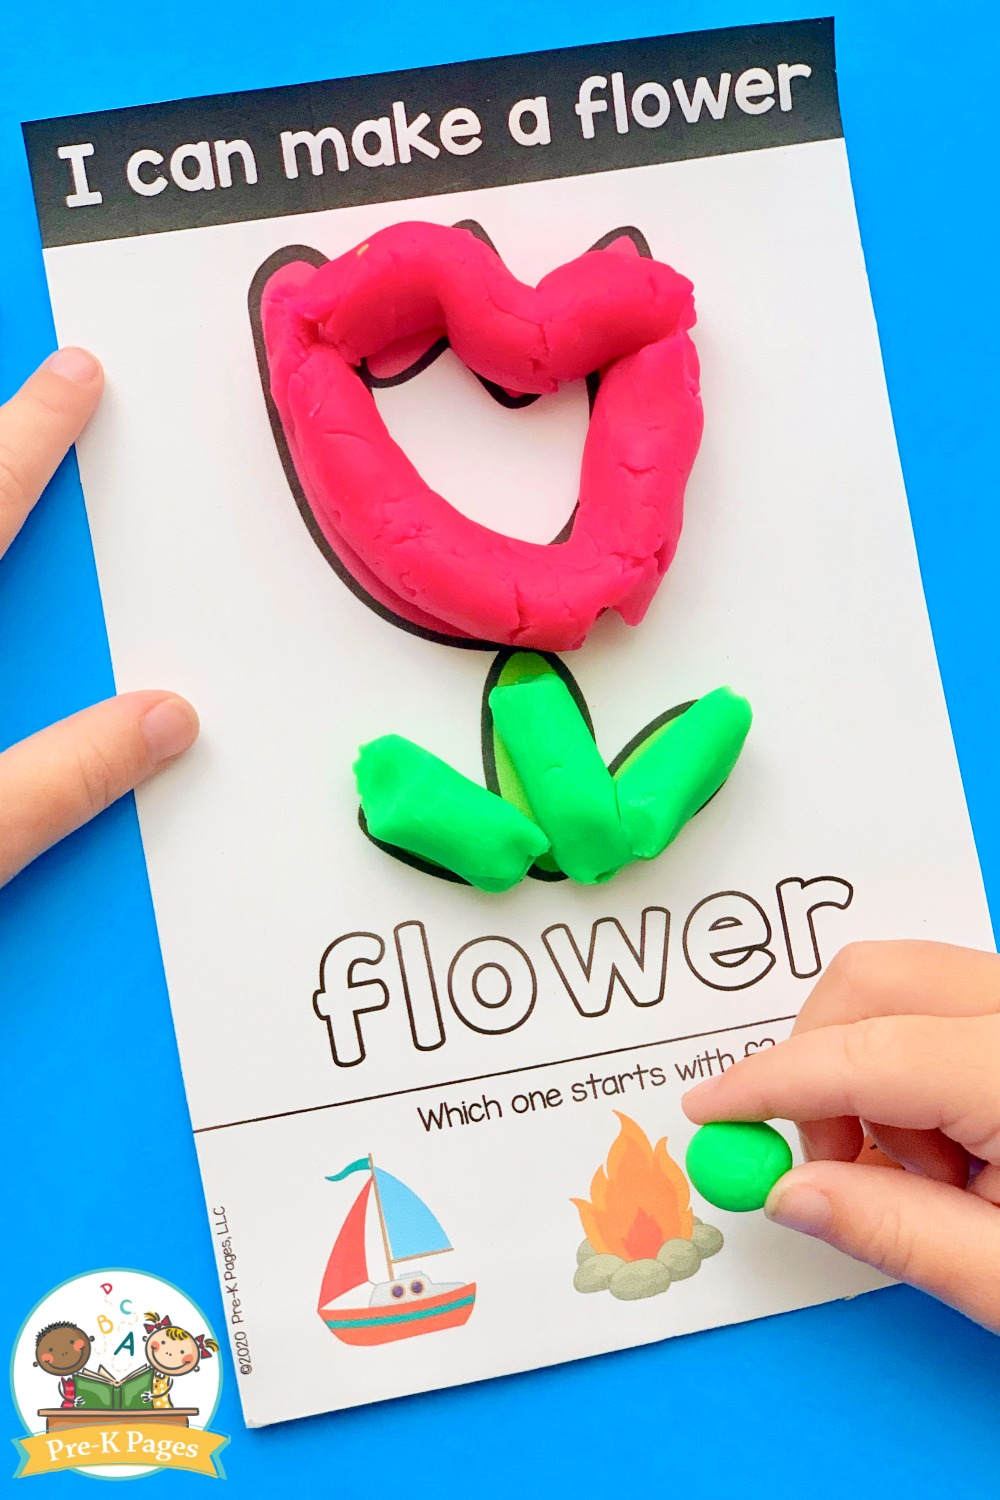 Making a flower with play dough